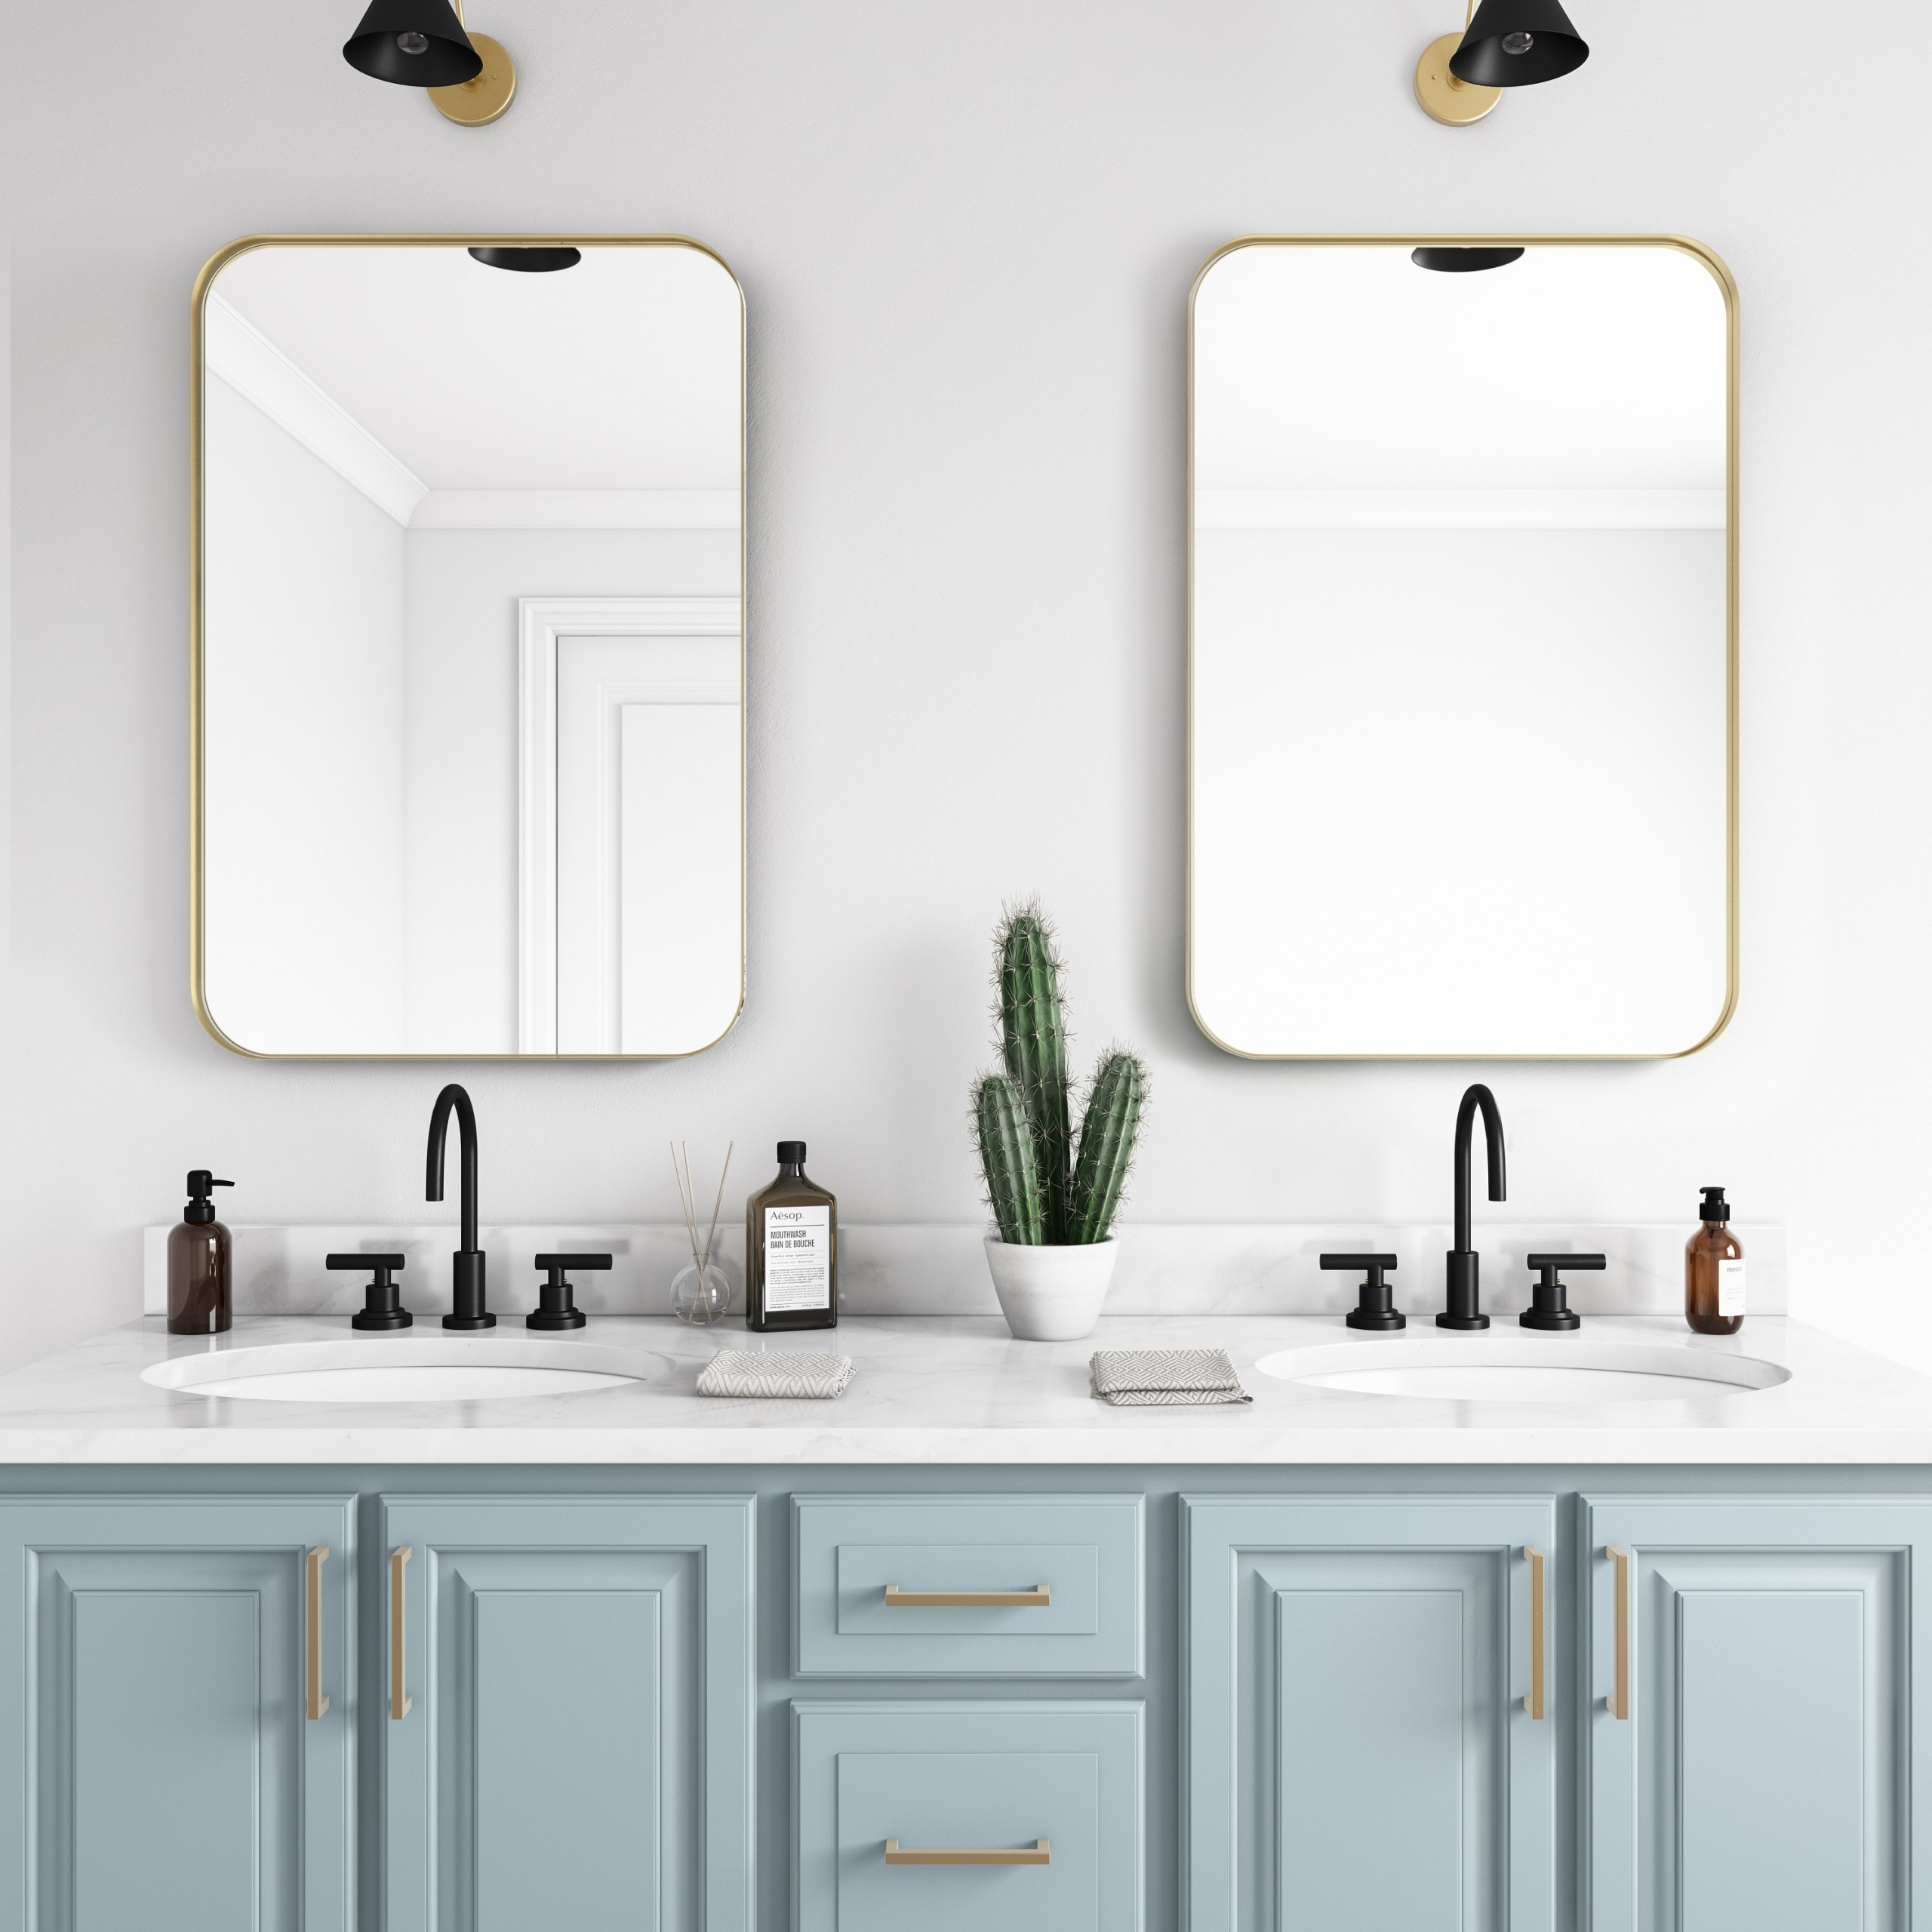 Gold metal framed rounded rectangle mirrors hanging on bathroom wall above double sink vanity